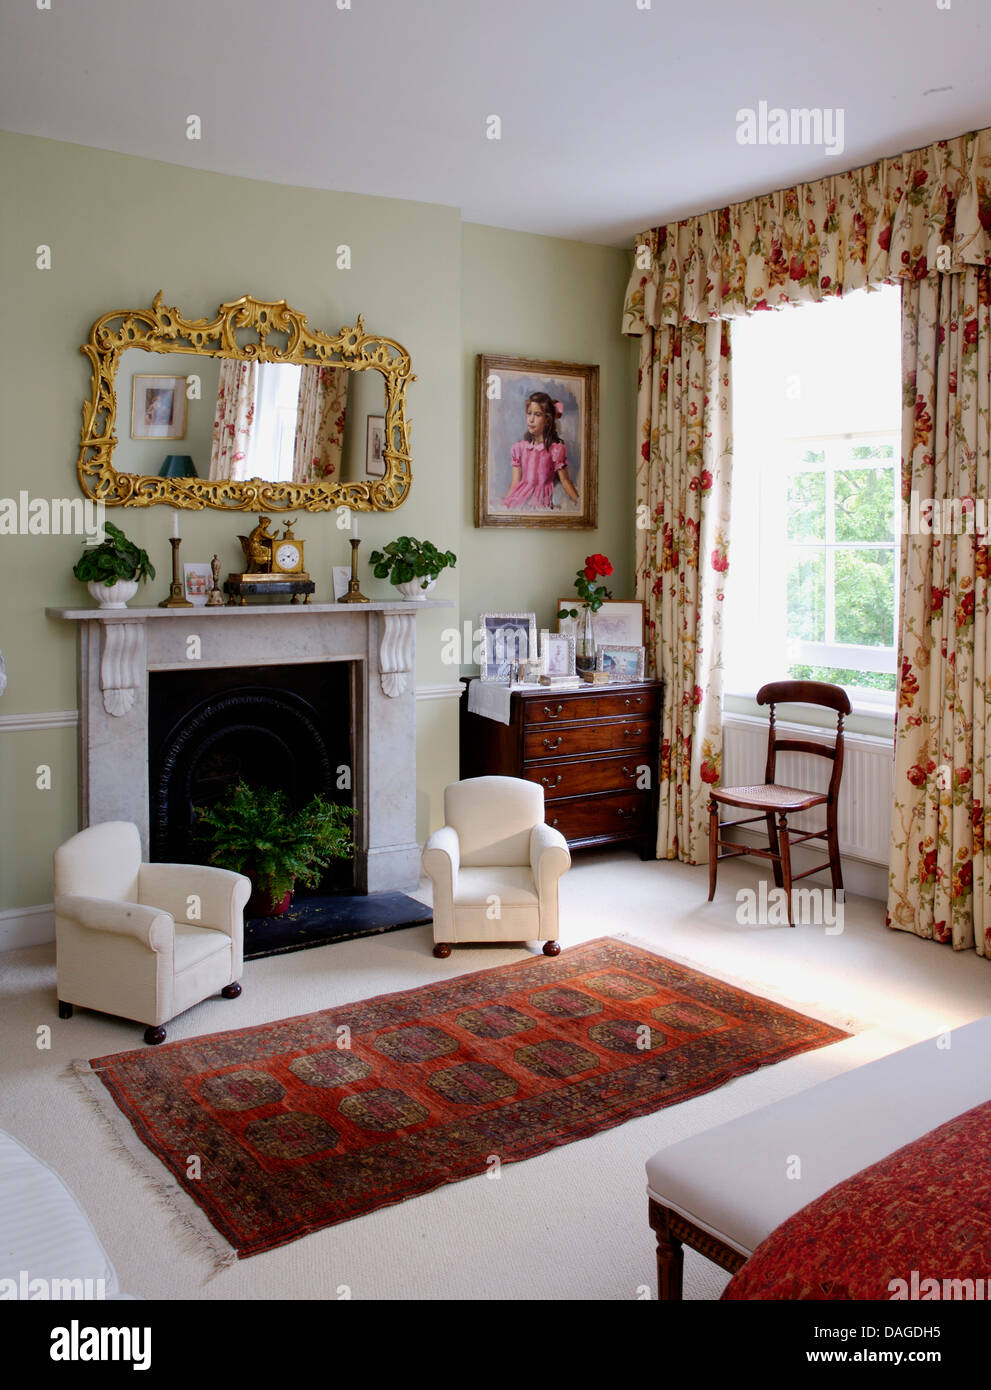 Pair Of Children S Armchairs In Front Of Fireplace In